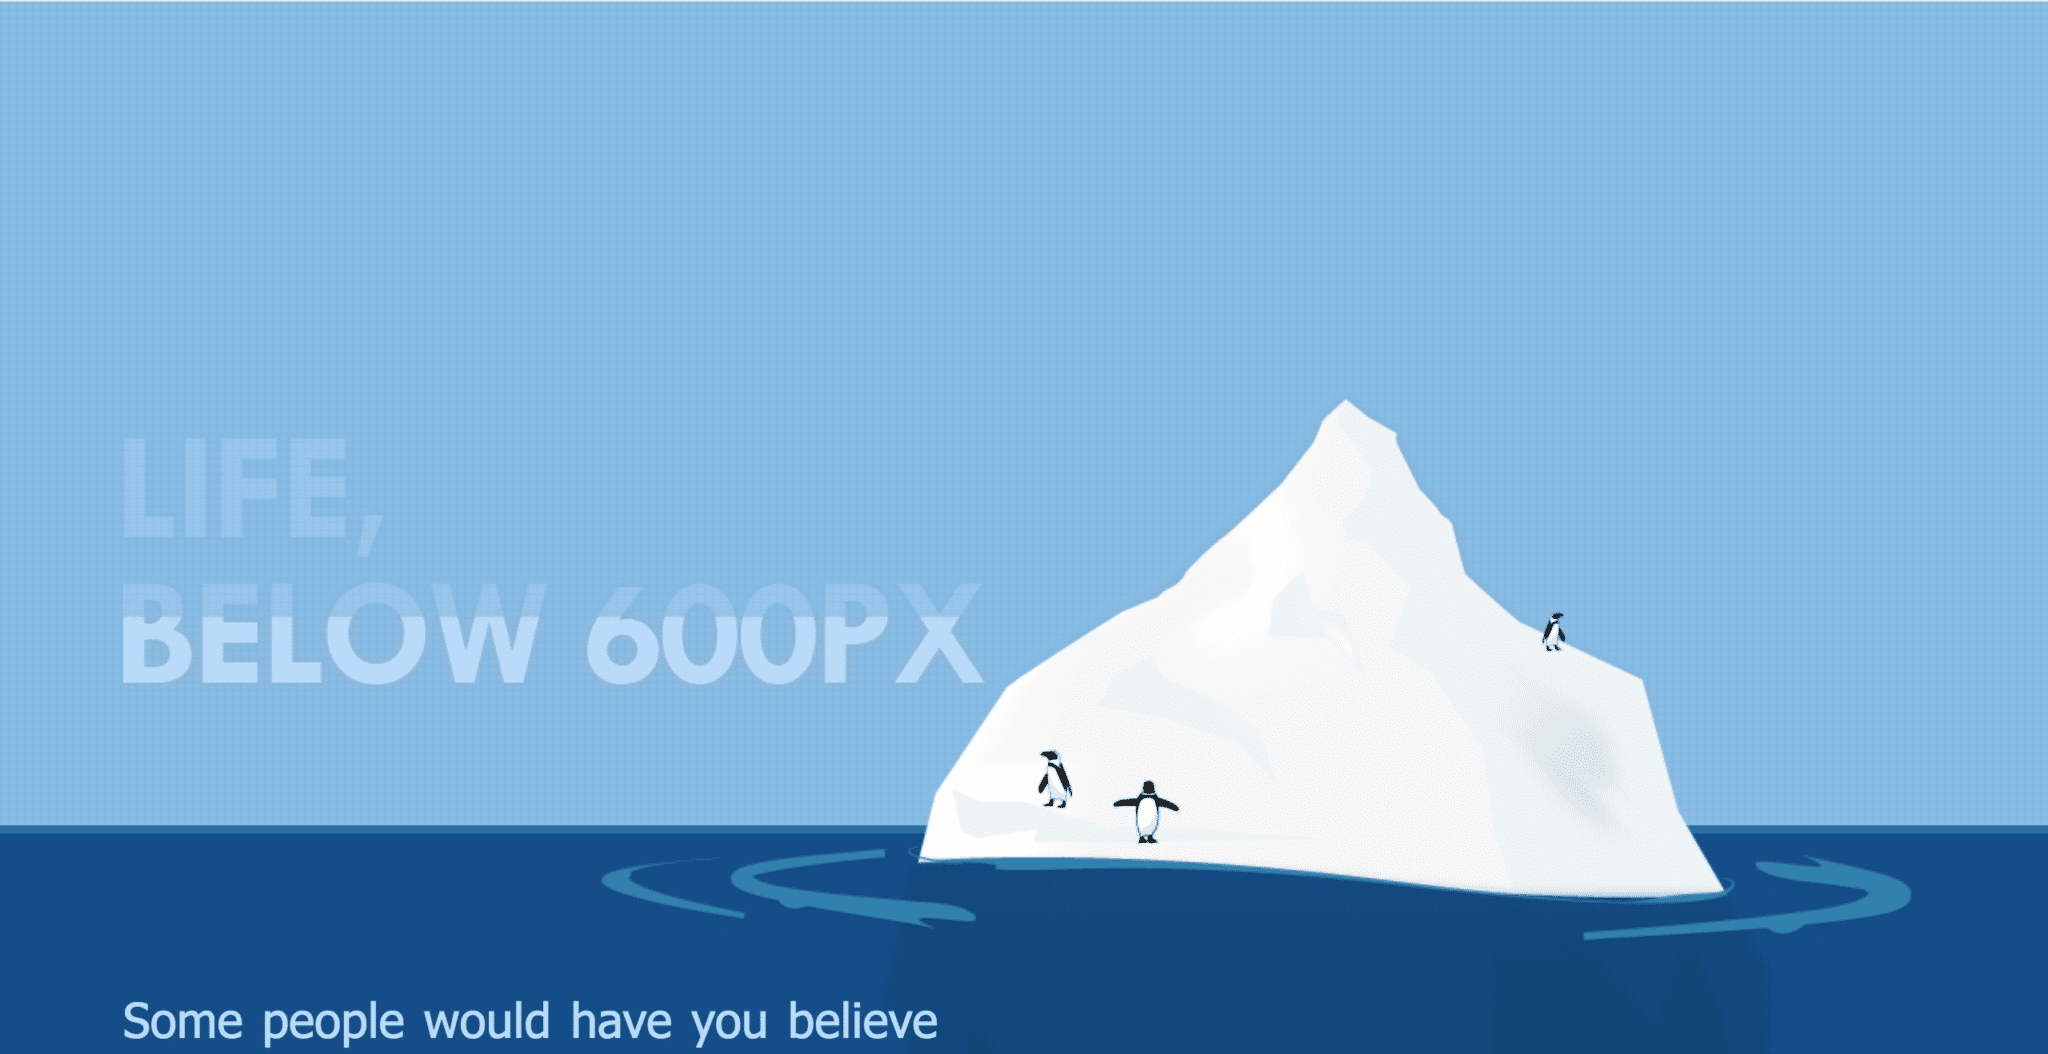 Life below 600px, using an iceberg as a metaphor for deeper content below the fold.